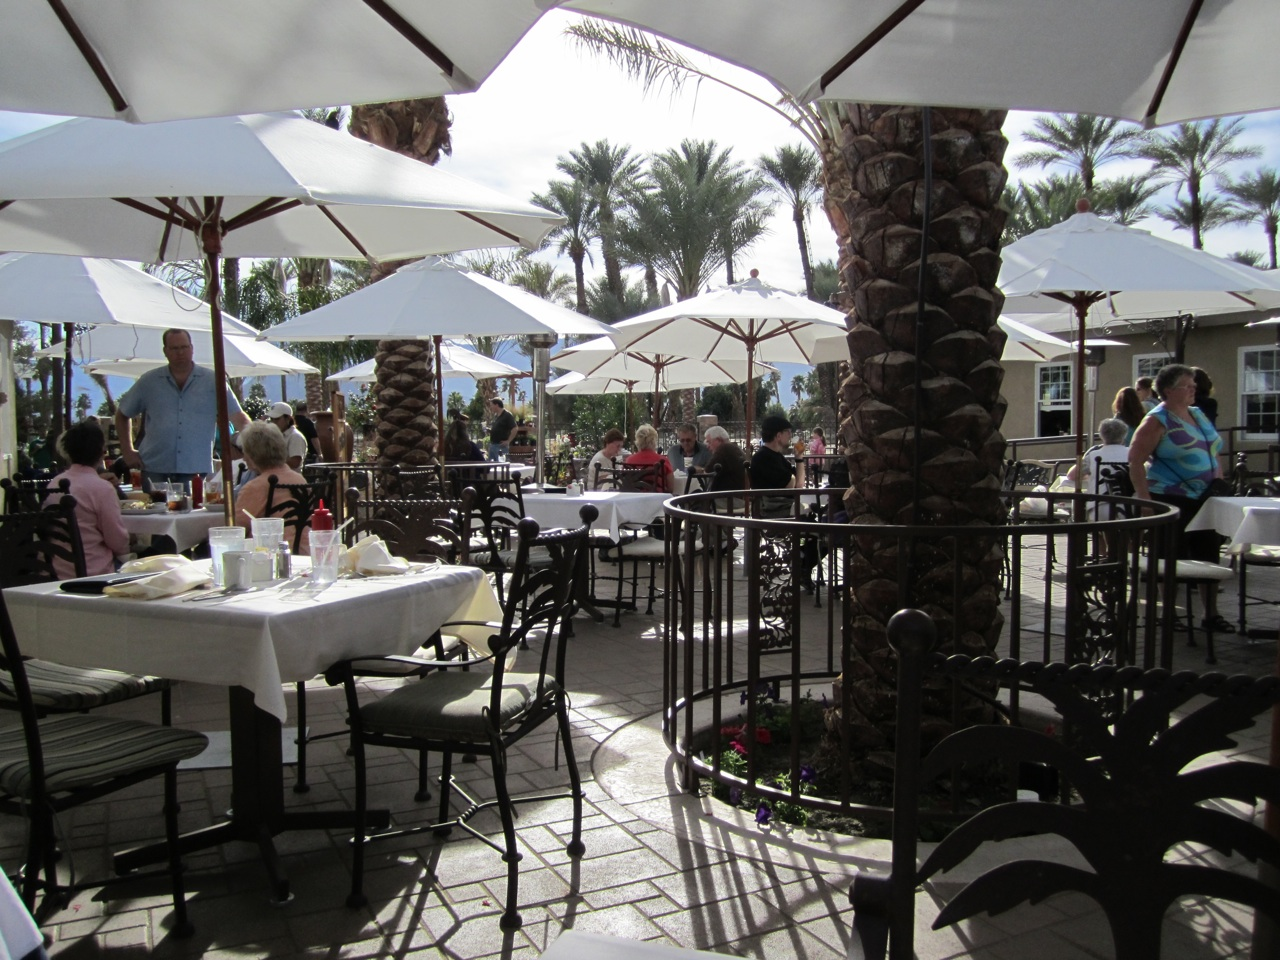 The Lunch Terrace At Shields Date Garden In Indio, CA